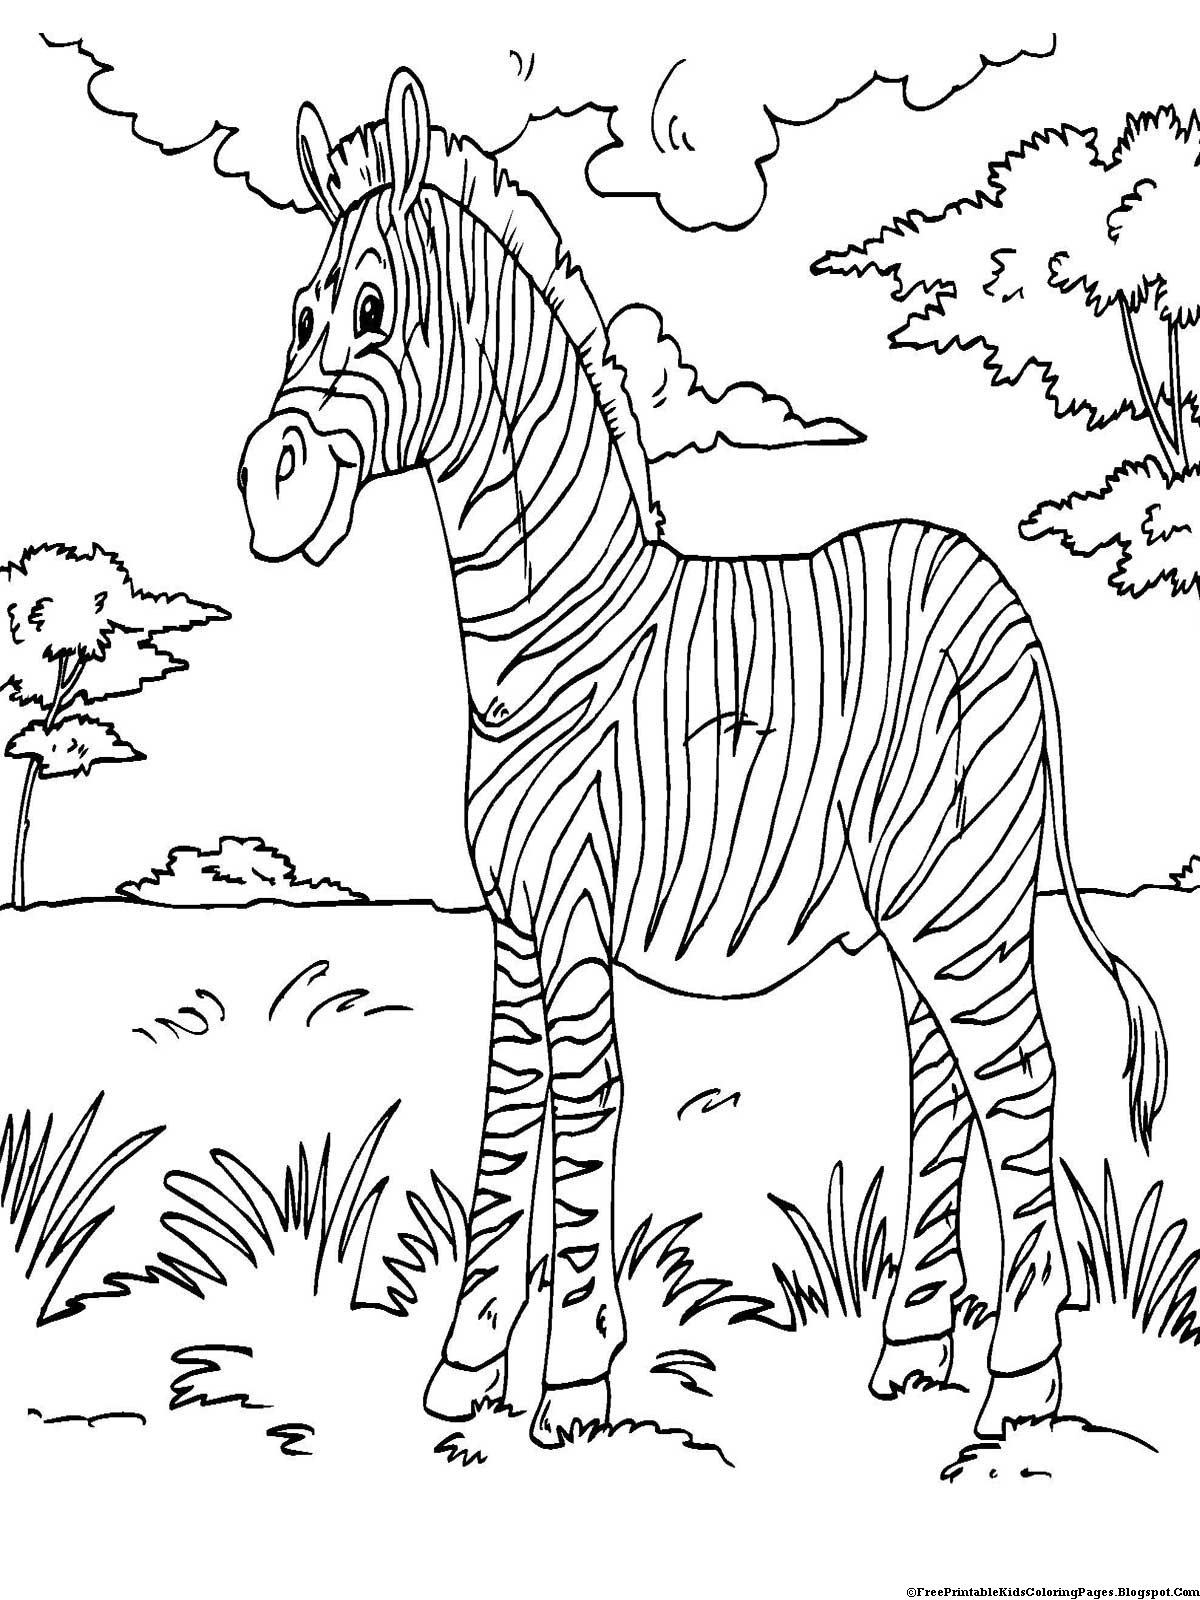 coloring sheets to print out free printable my little pony coloring pages for kids coloring sheets print to out